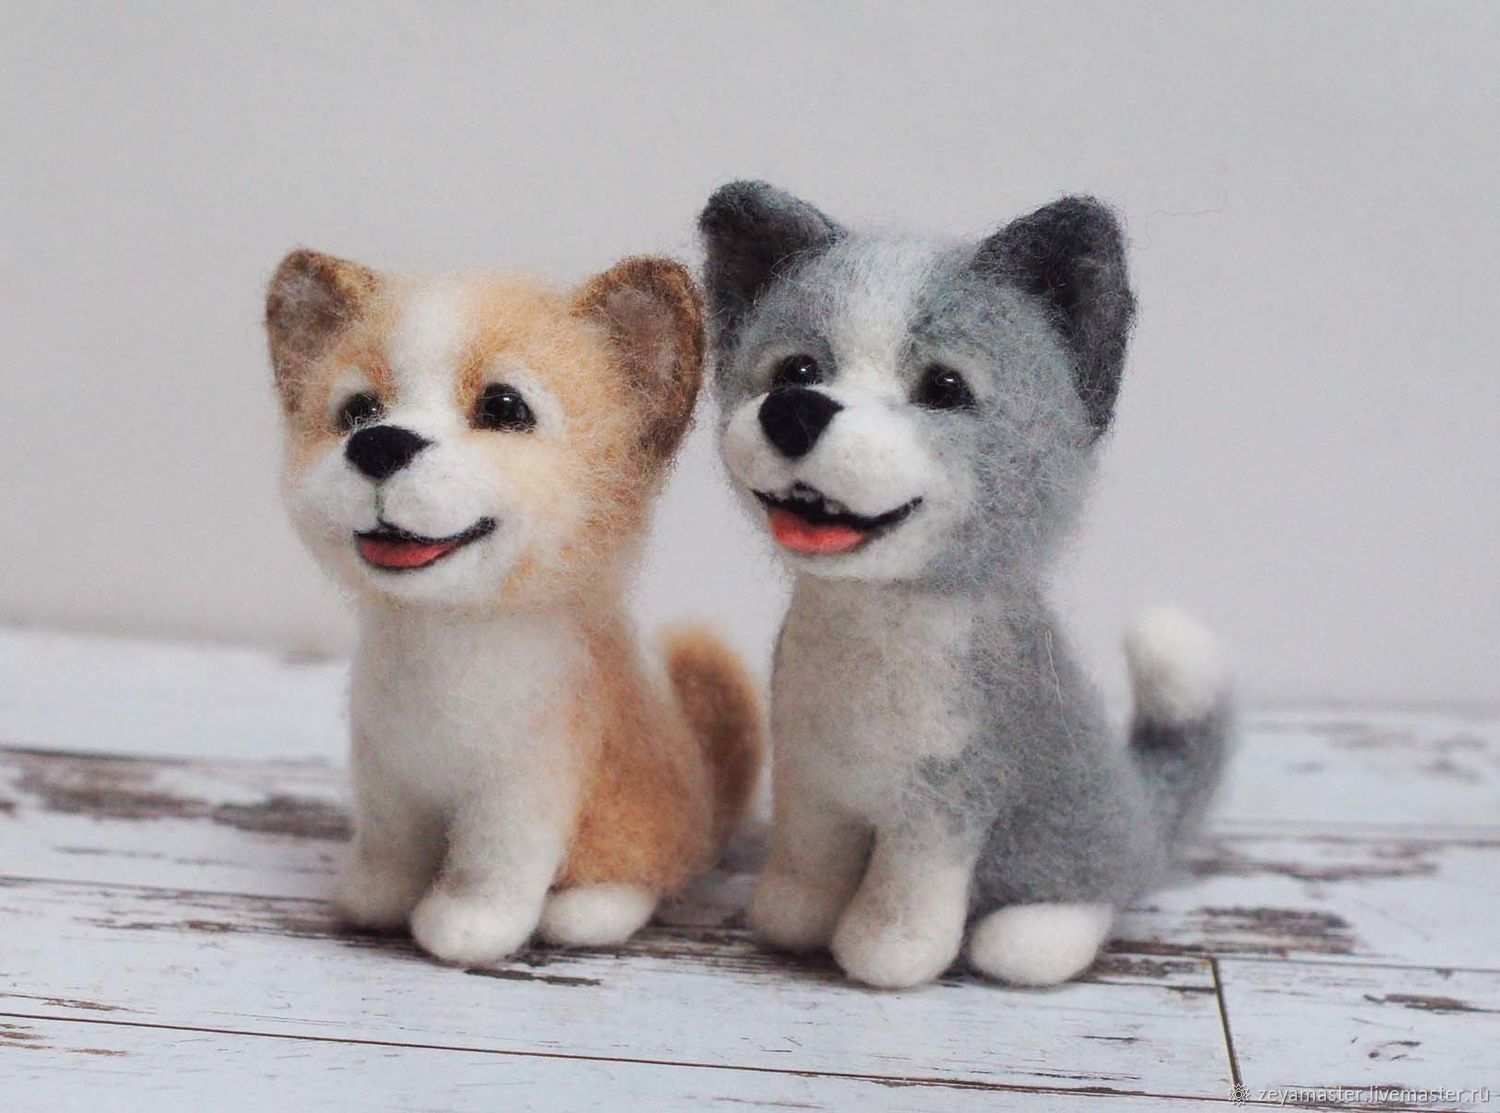 Little Toy Dogs : Funny little dog toy felted wool shop online on